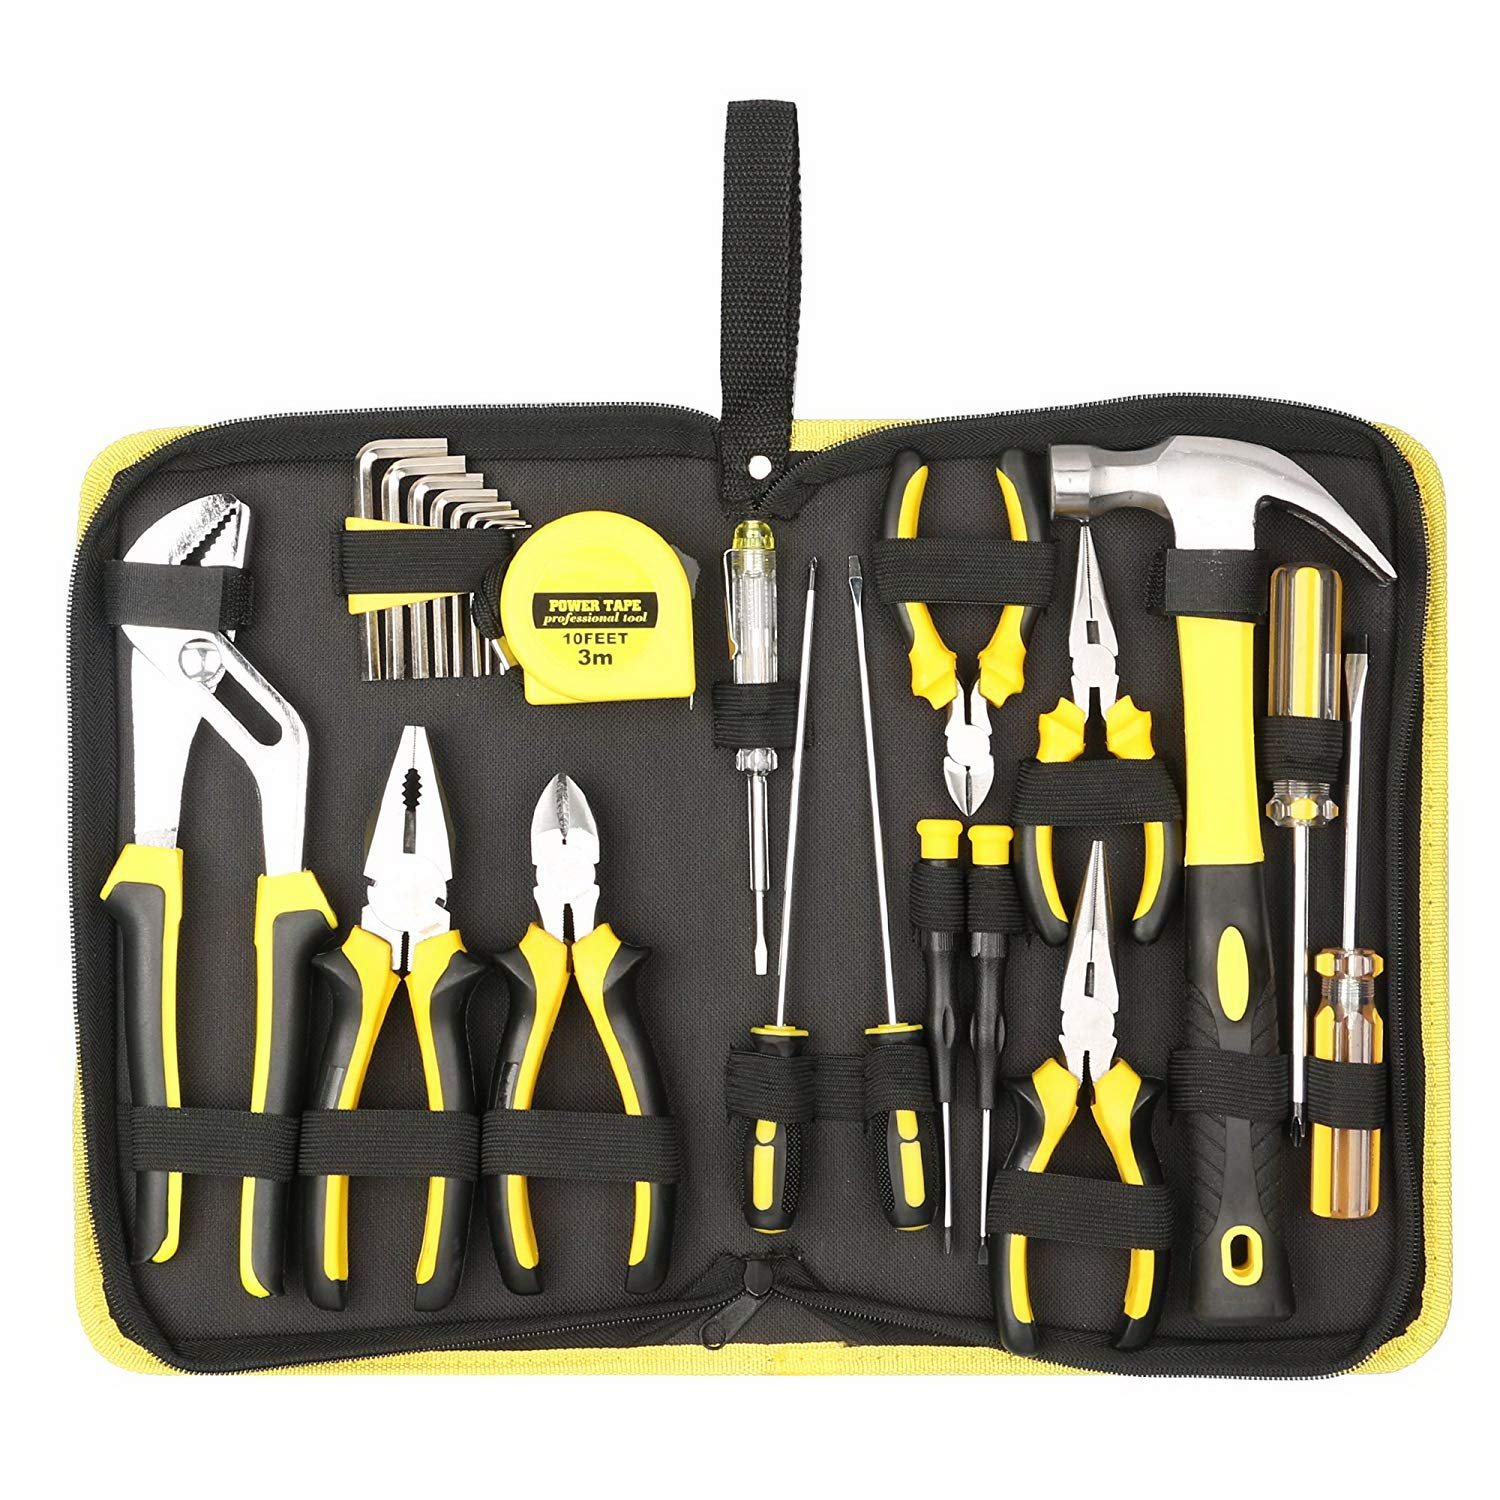 Tool Kit. Best Portable Small Basic Starter Professional Household DIY Hand Mixed Repair Set W/Storage Tool Bag For Home, Garage, Office For Men&Women. Includes Screwdriver, Wrench, Pliers, Etc.